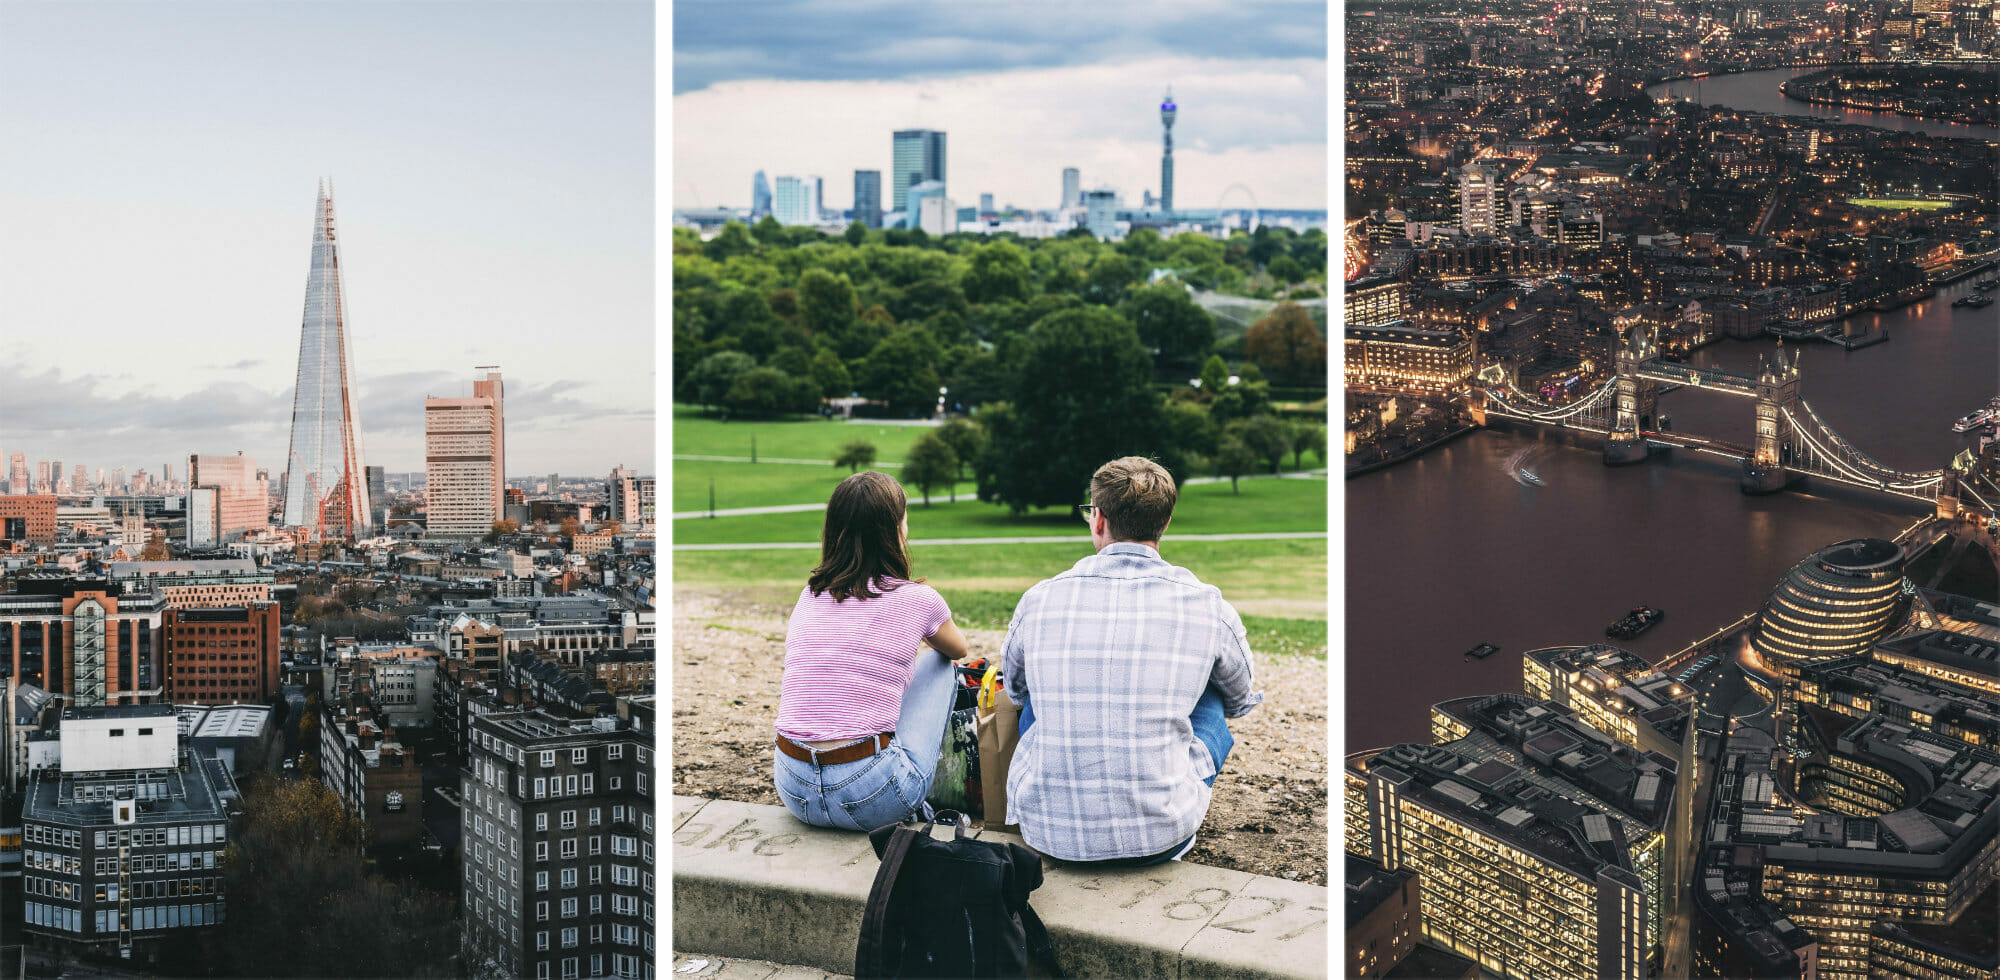 7 Jaw-Dropping Best Views in London (Visitor + Local Favorites!) via @girlsgonelondon